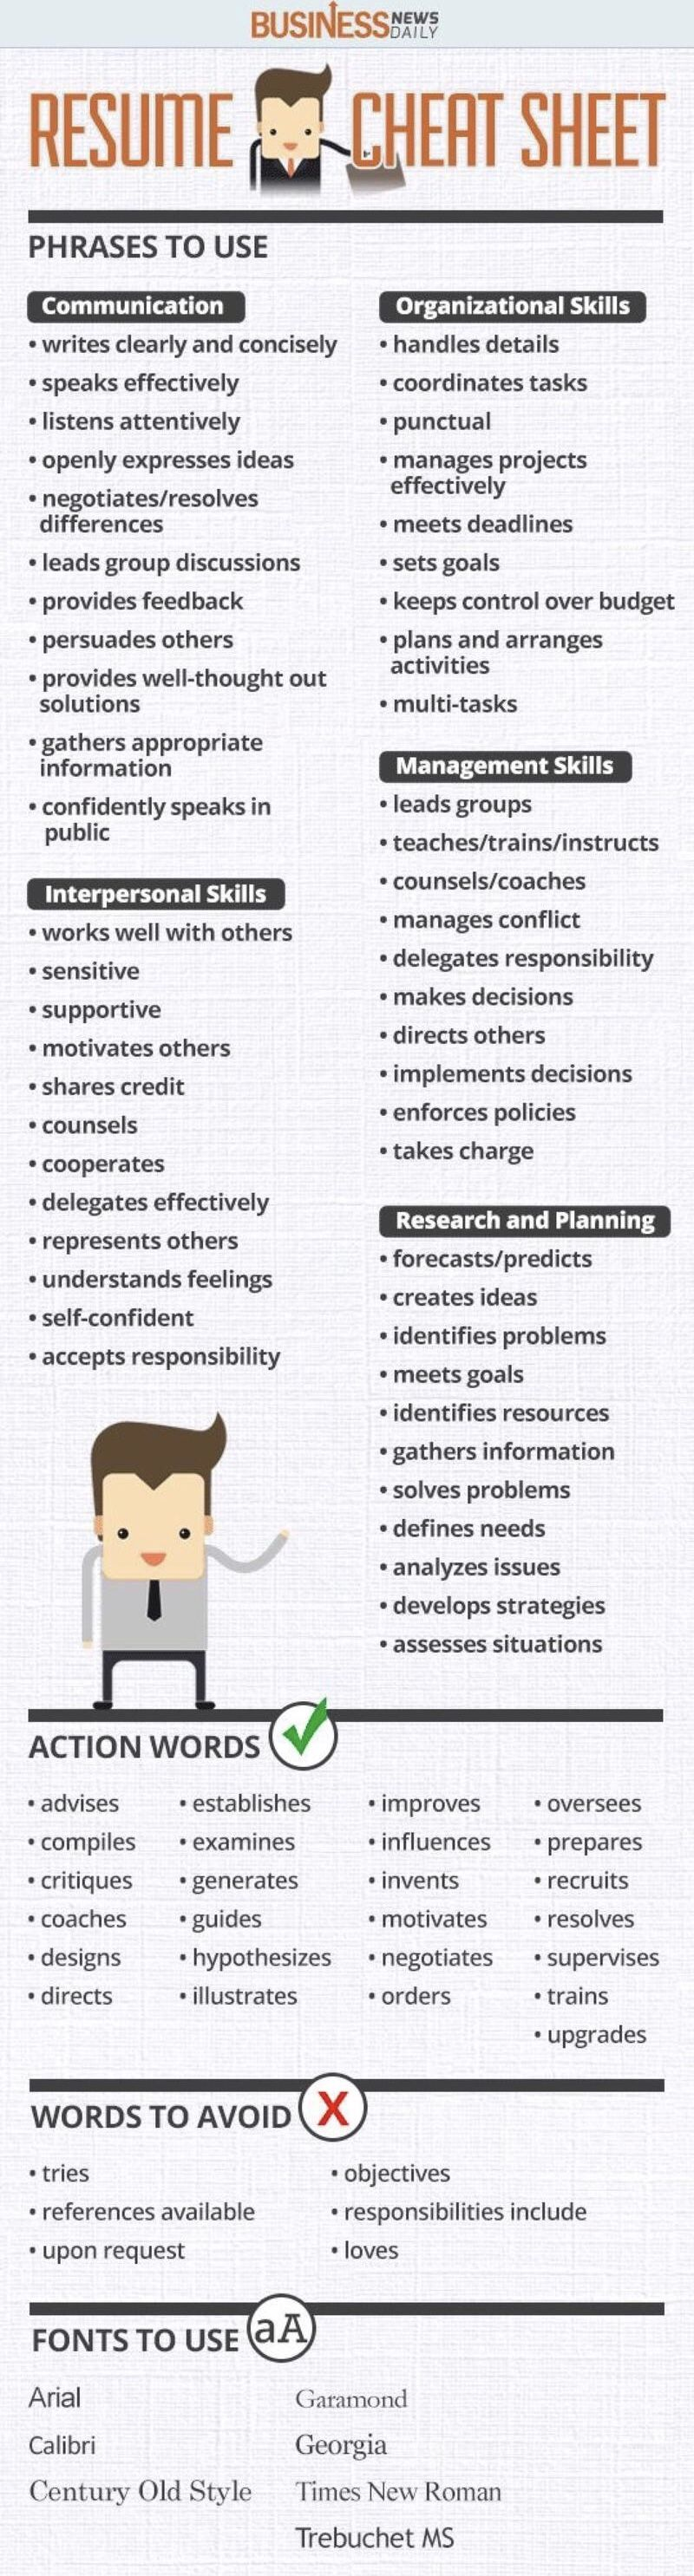 Pin by remss on cheat sheets resume skills resume tips